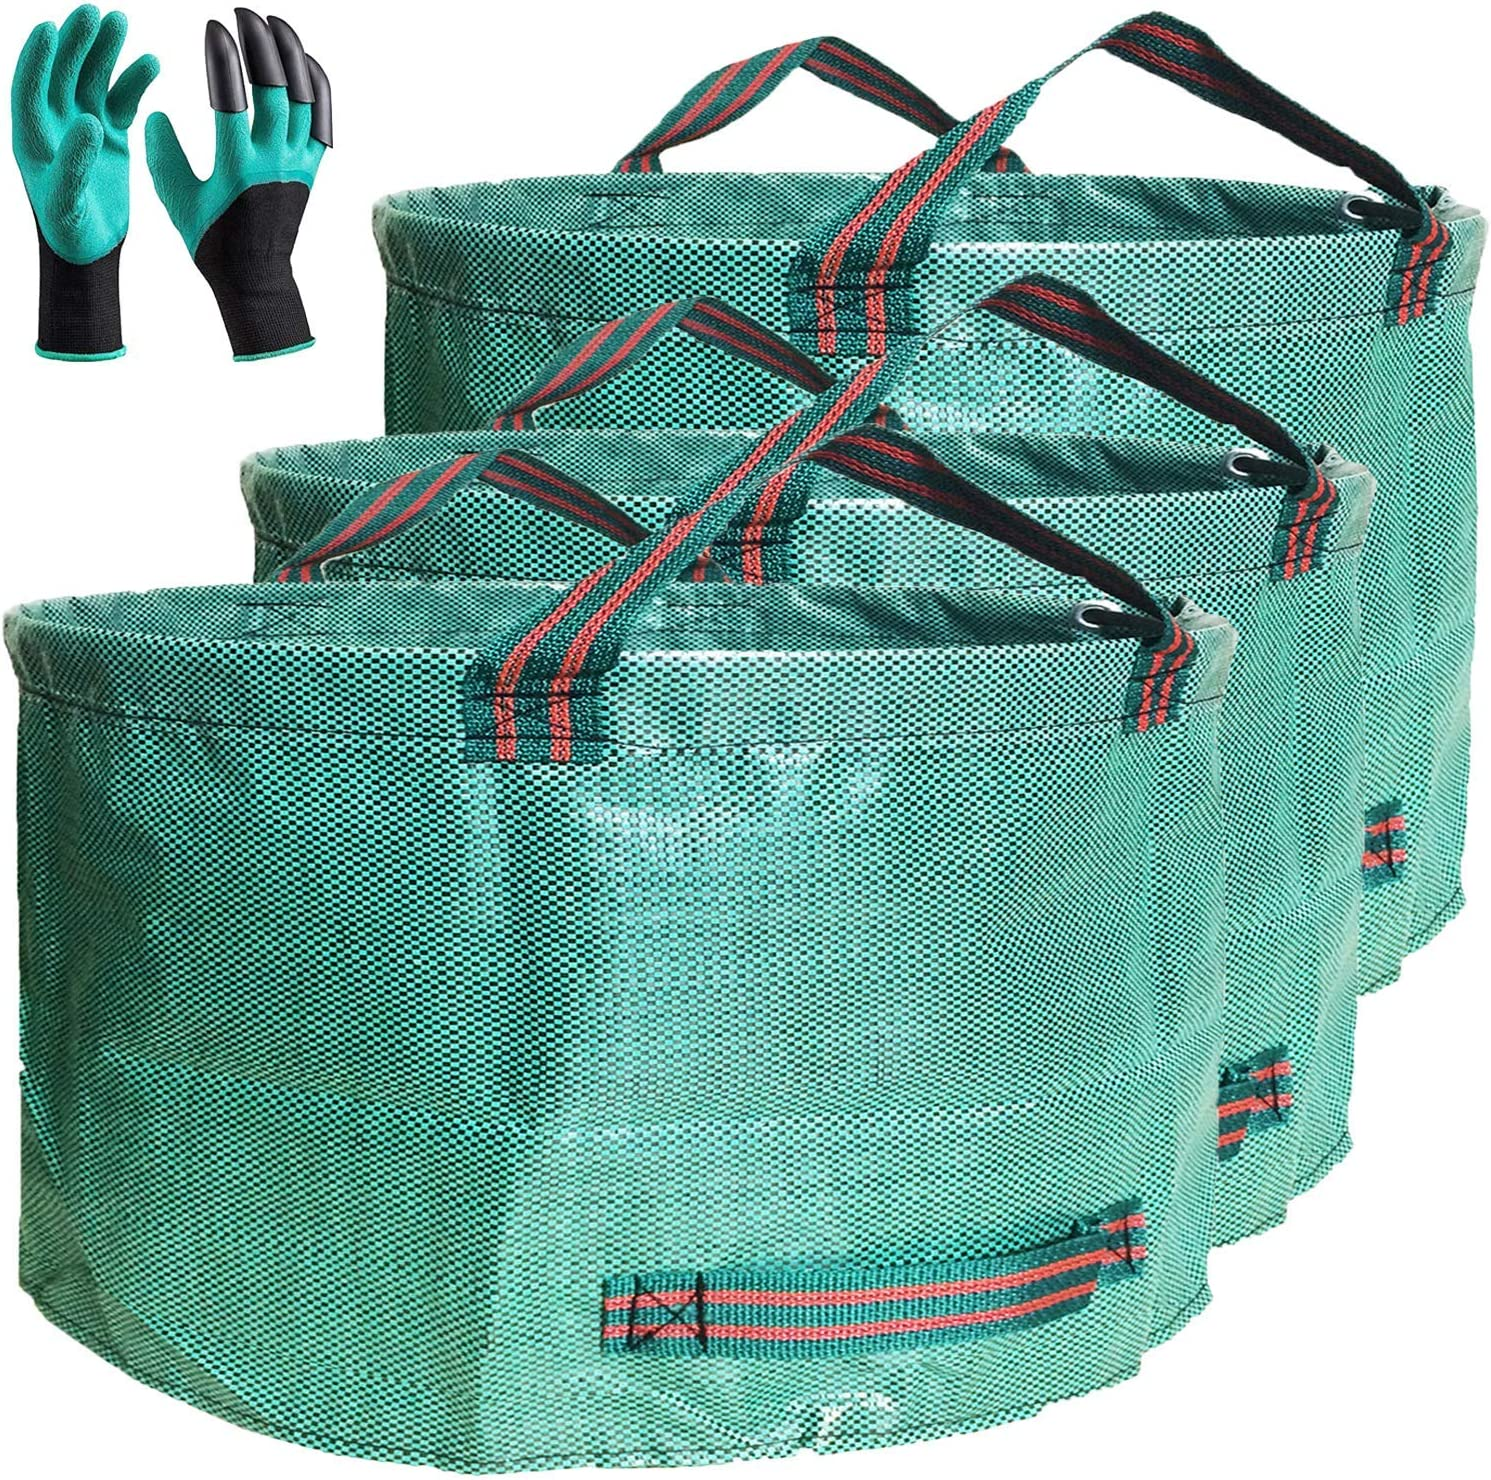 SALENEW very popular New color Standard 3-Pack 46 Gallon Patio Yard Bags Garden D26 H19 inch